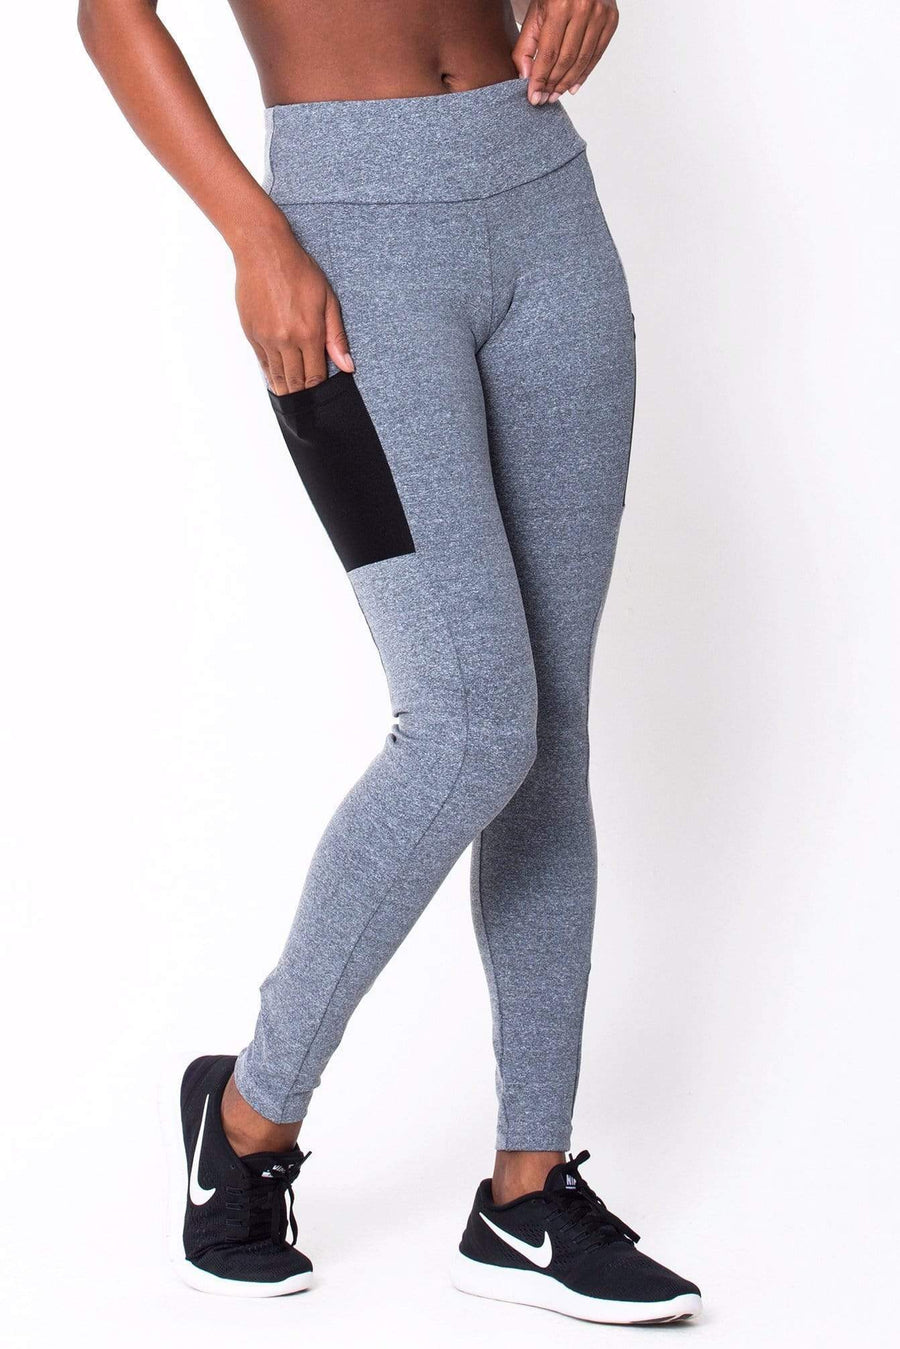 Heather Grey Work It Legging - Sam's Fitness Goods